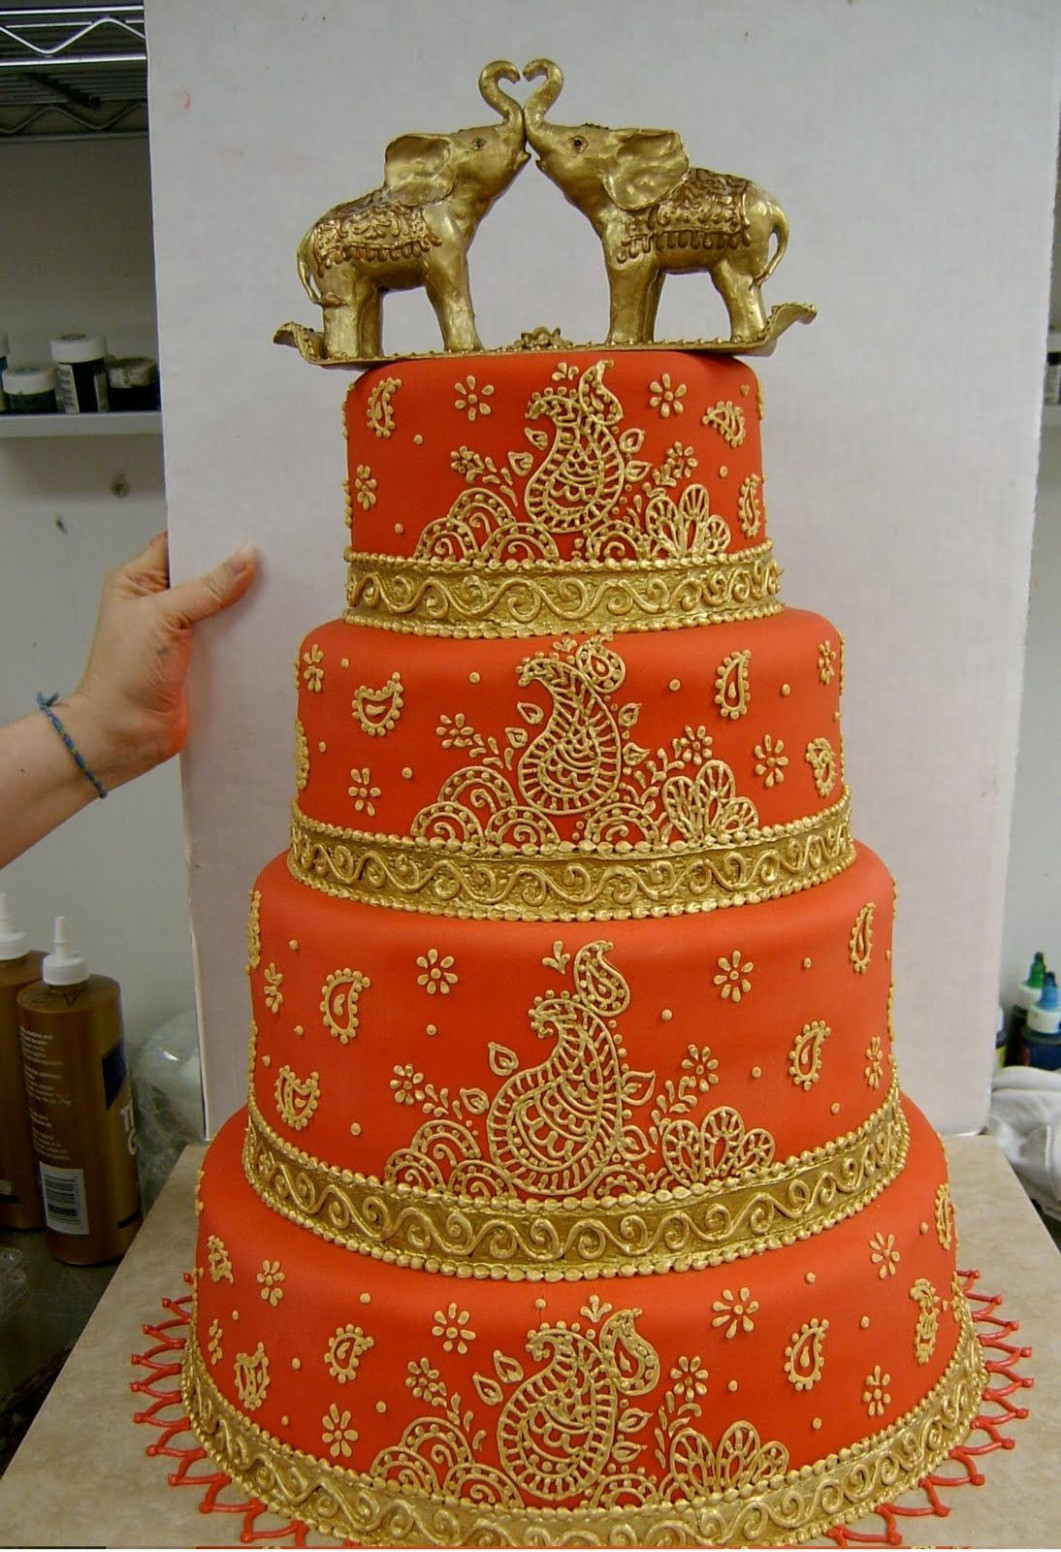 bollywood style wedding cakes - Google Search | Bake Me A ..